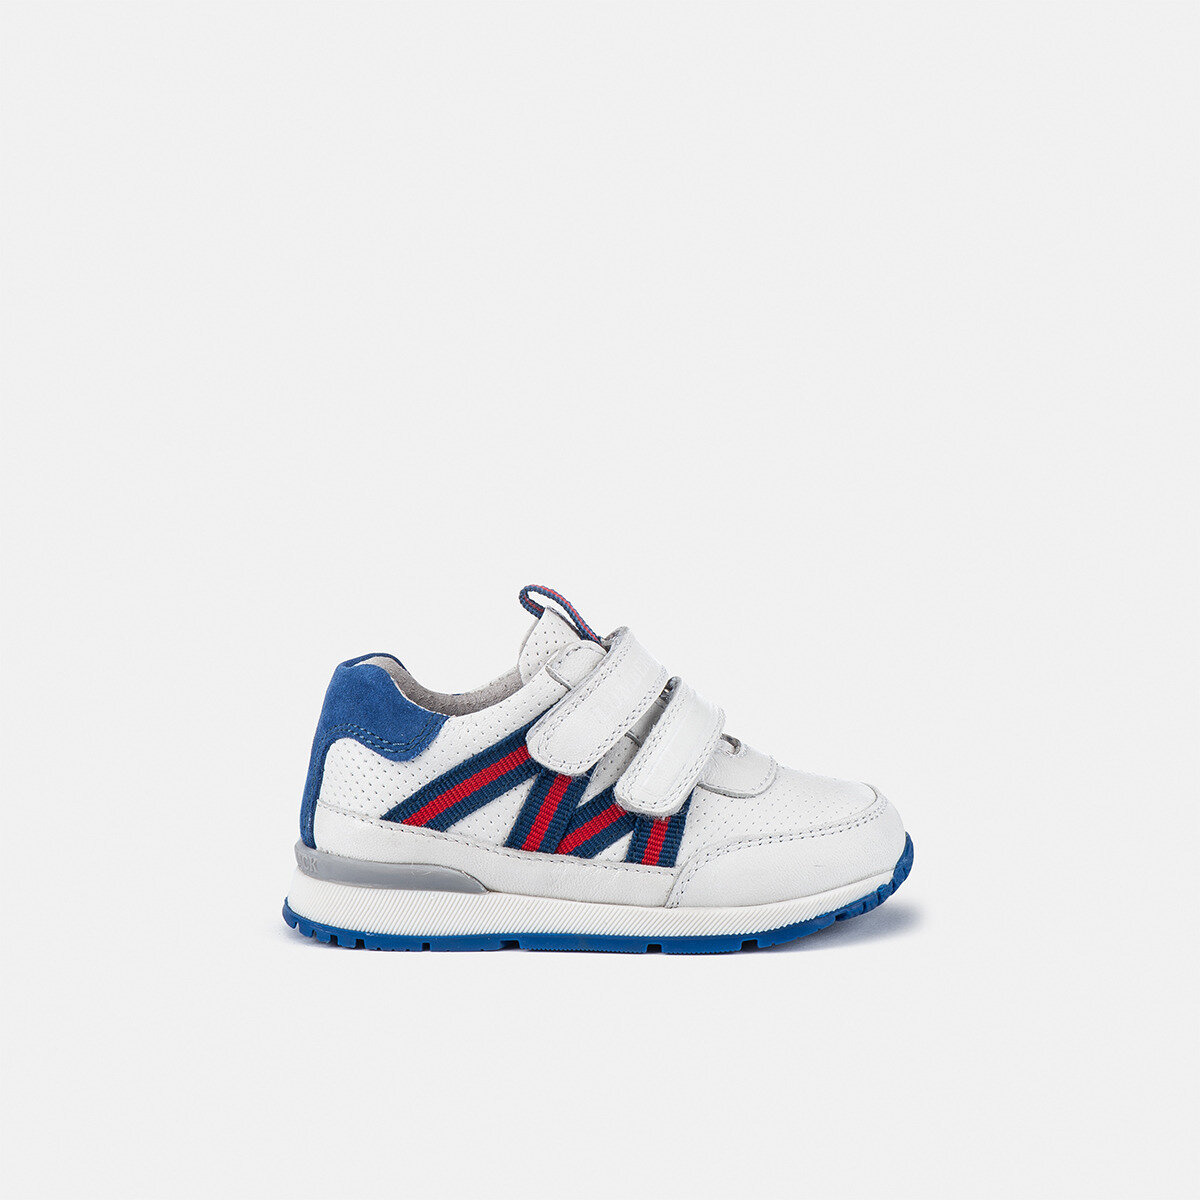 SQUISH WHITE/BLUE Boy Sneakers